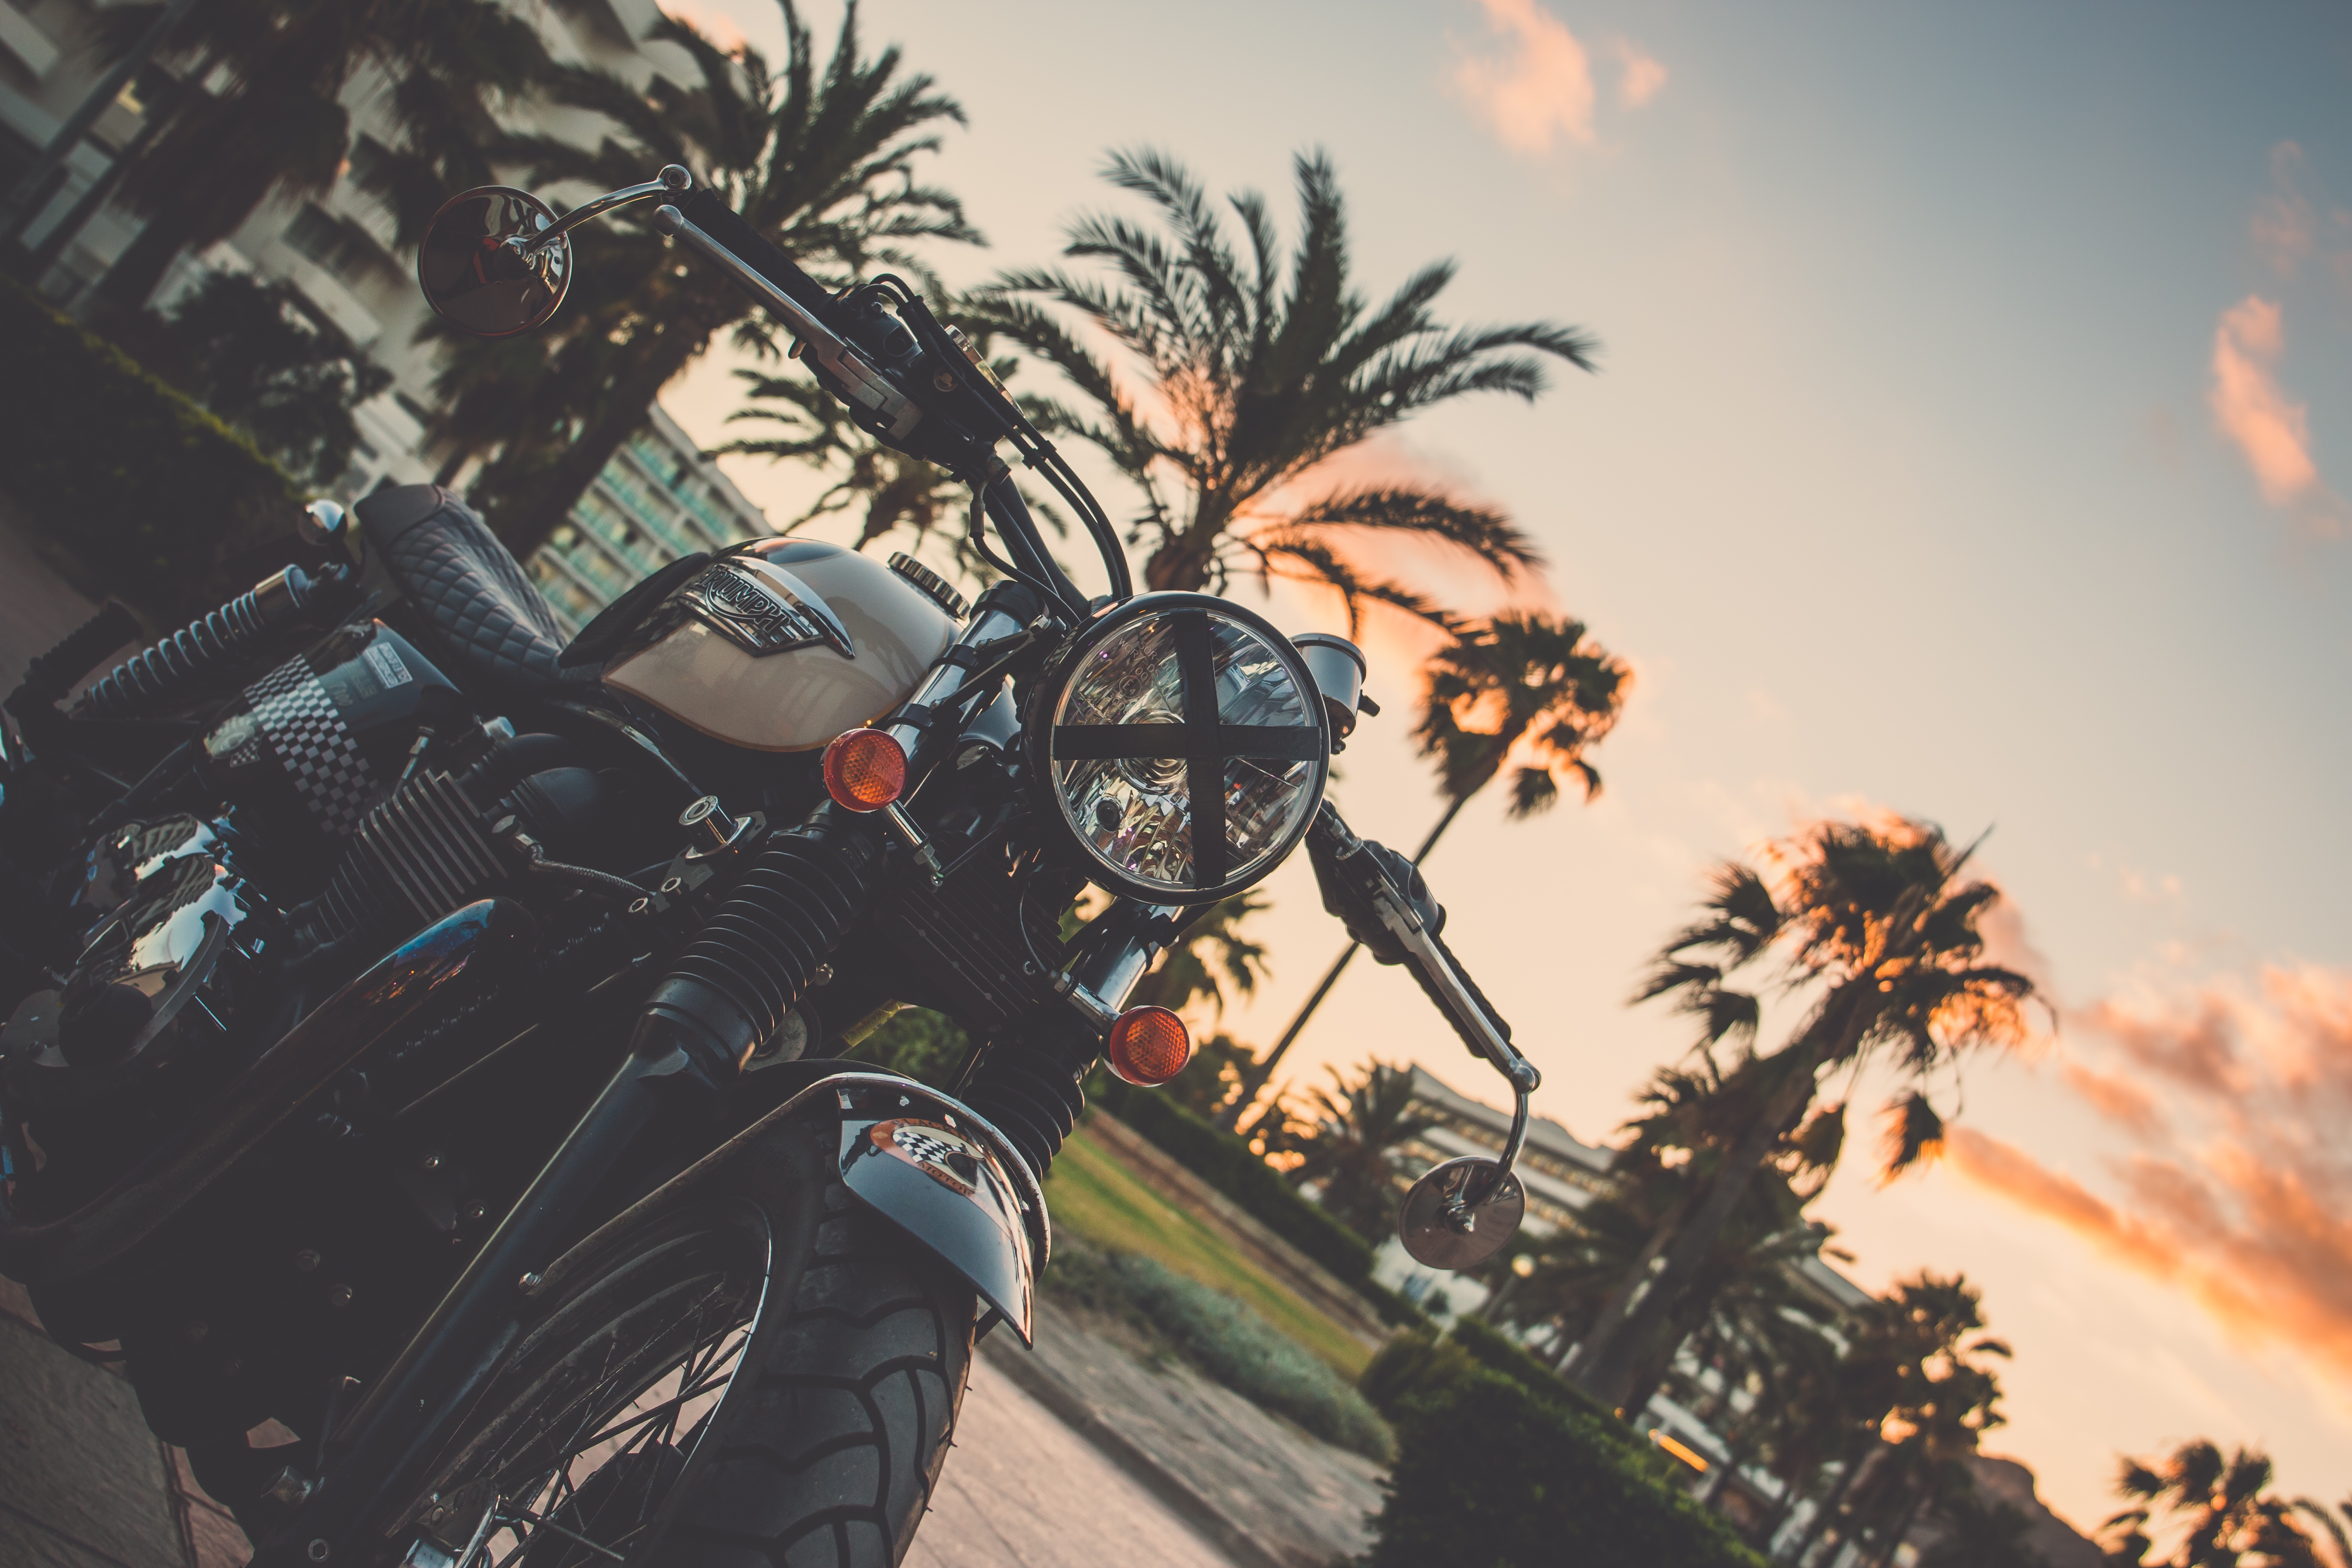 Motorcycle with palm trees and a setting sun